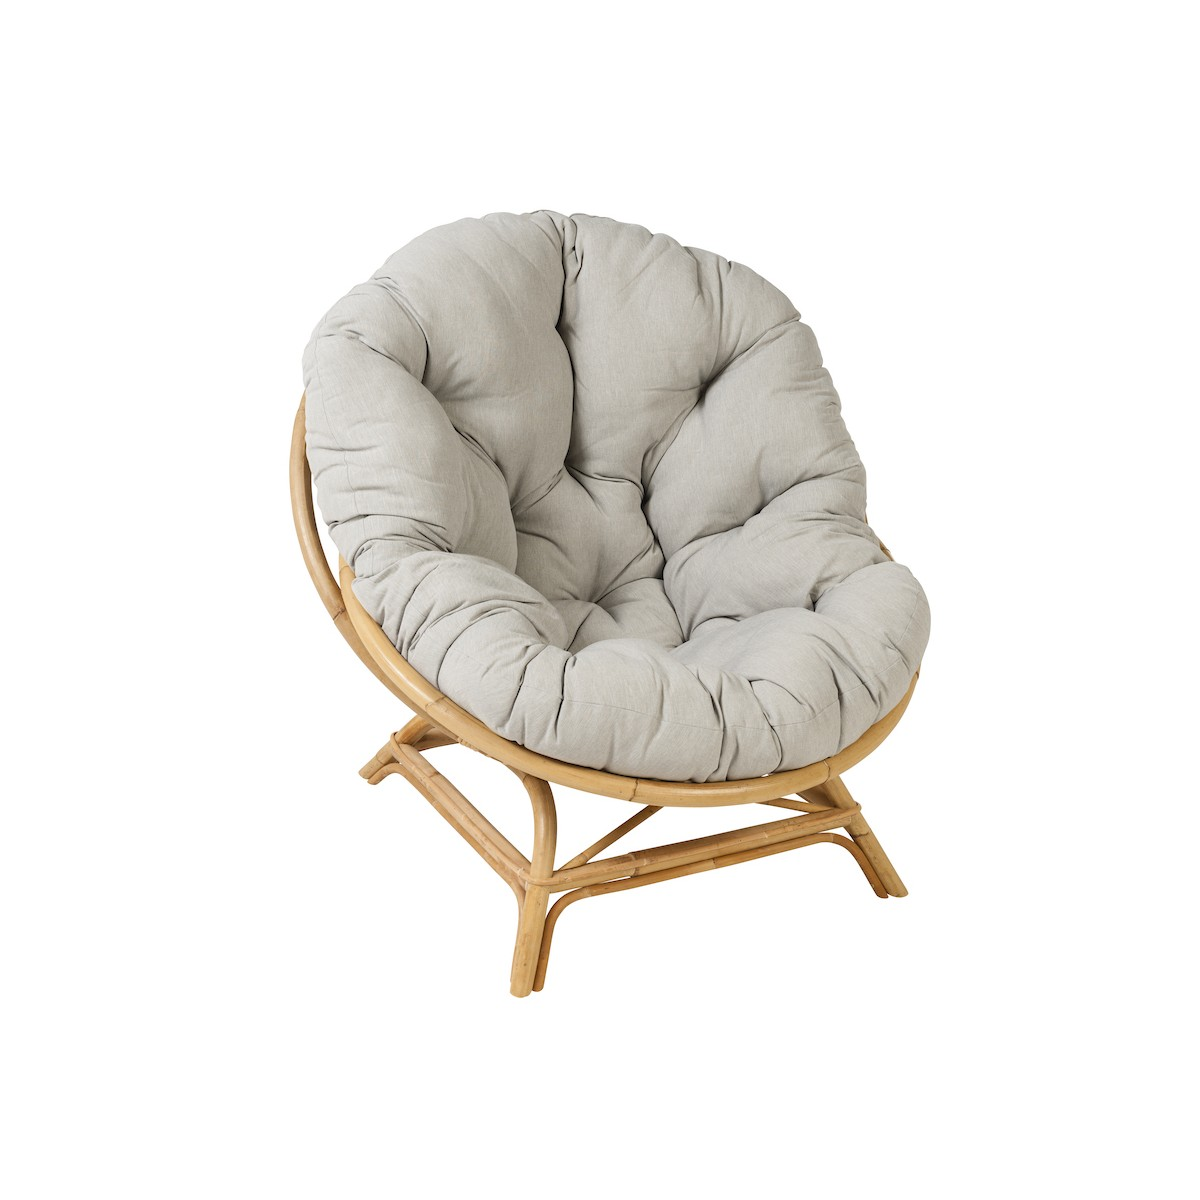 Shell Xxl Vintage Style Natural Rattan Chair With Cushion